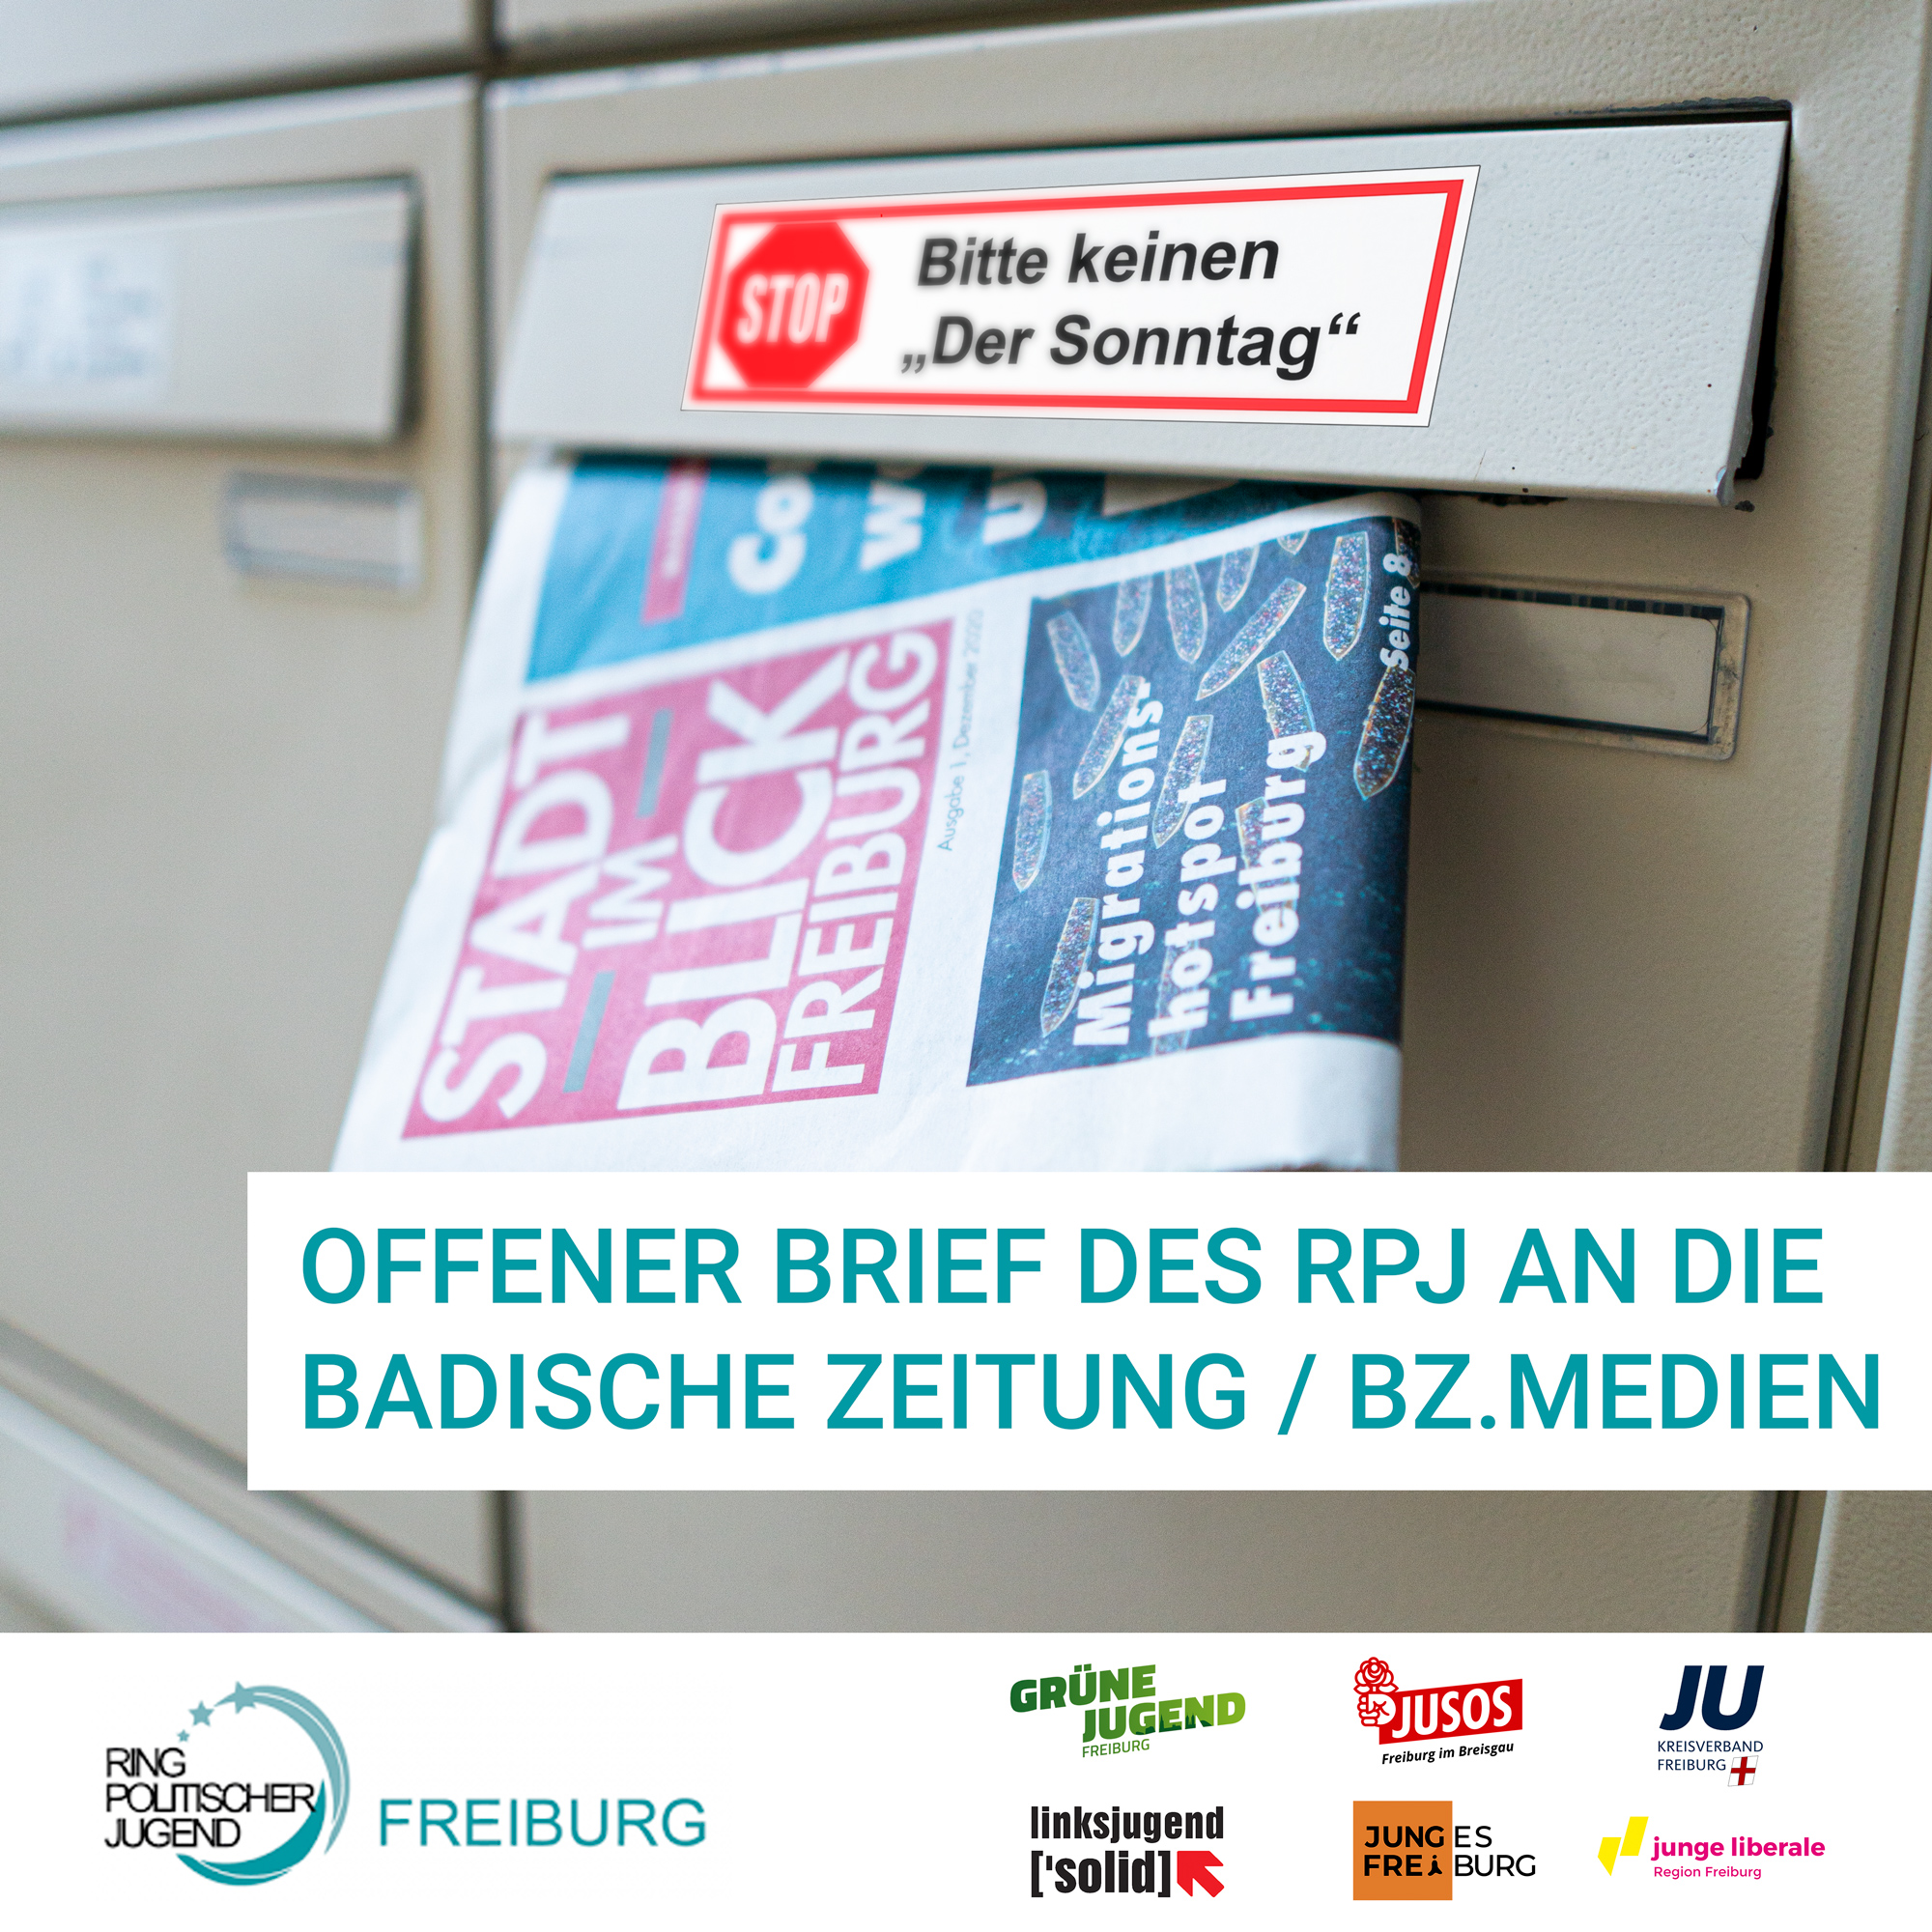 RPJ-SharePic-Offener-Brief